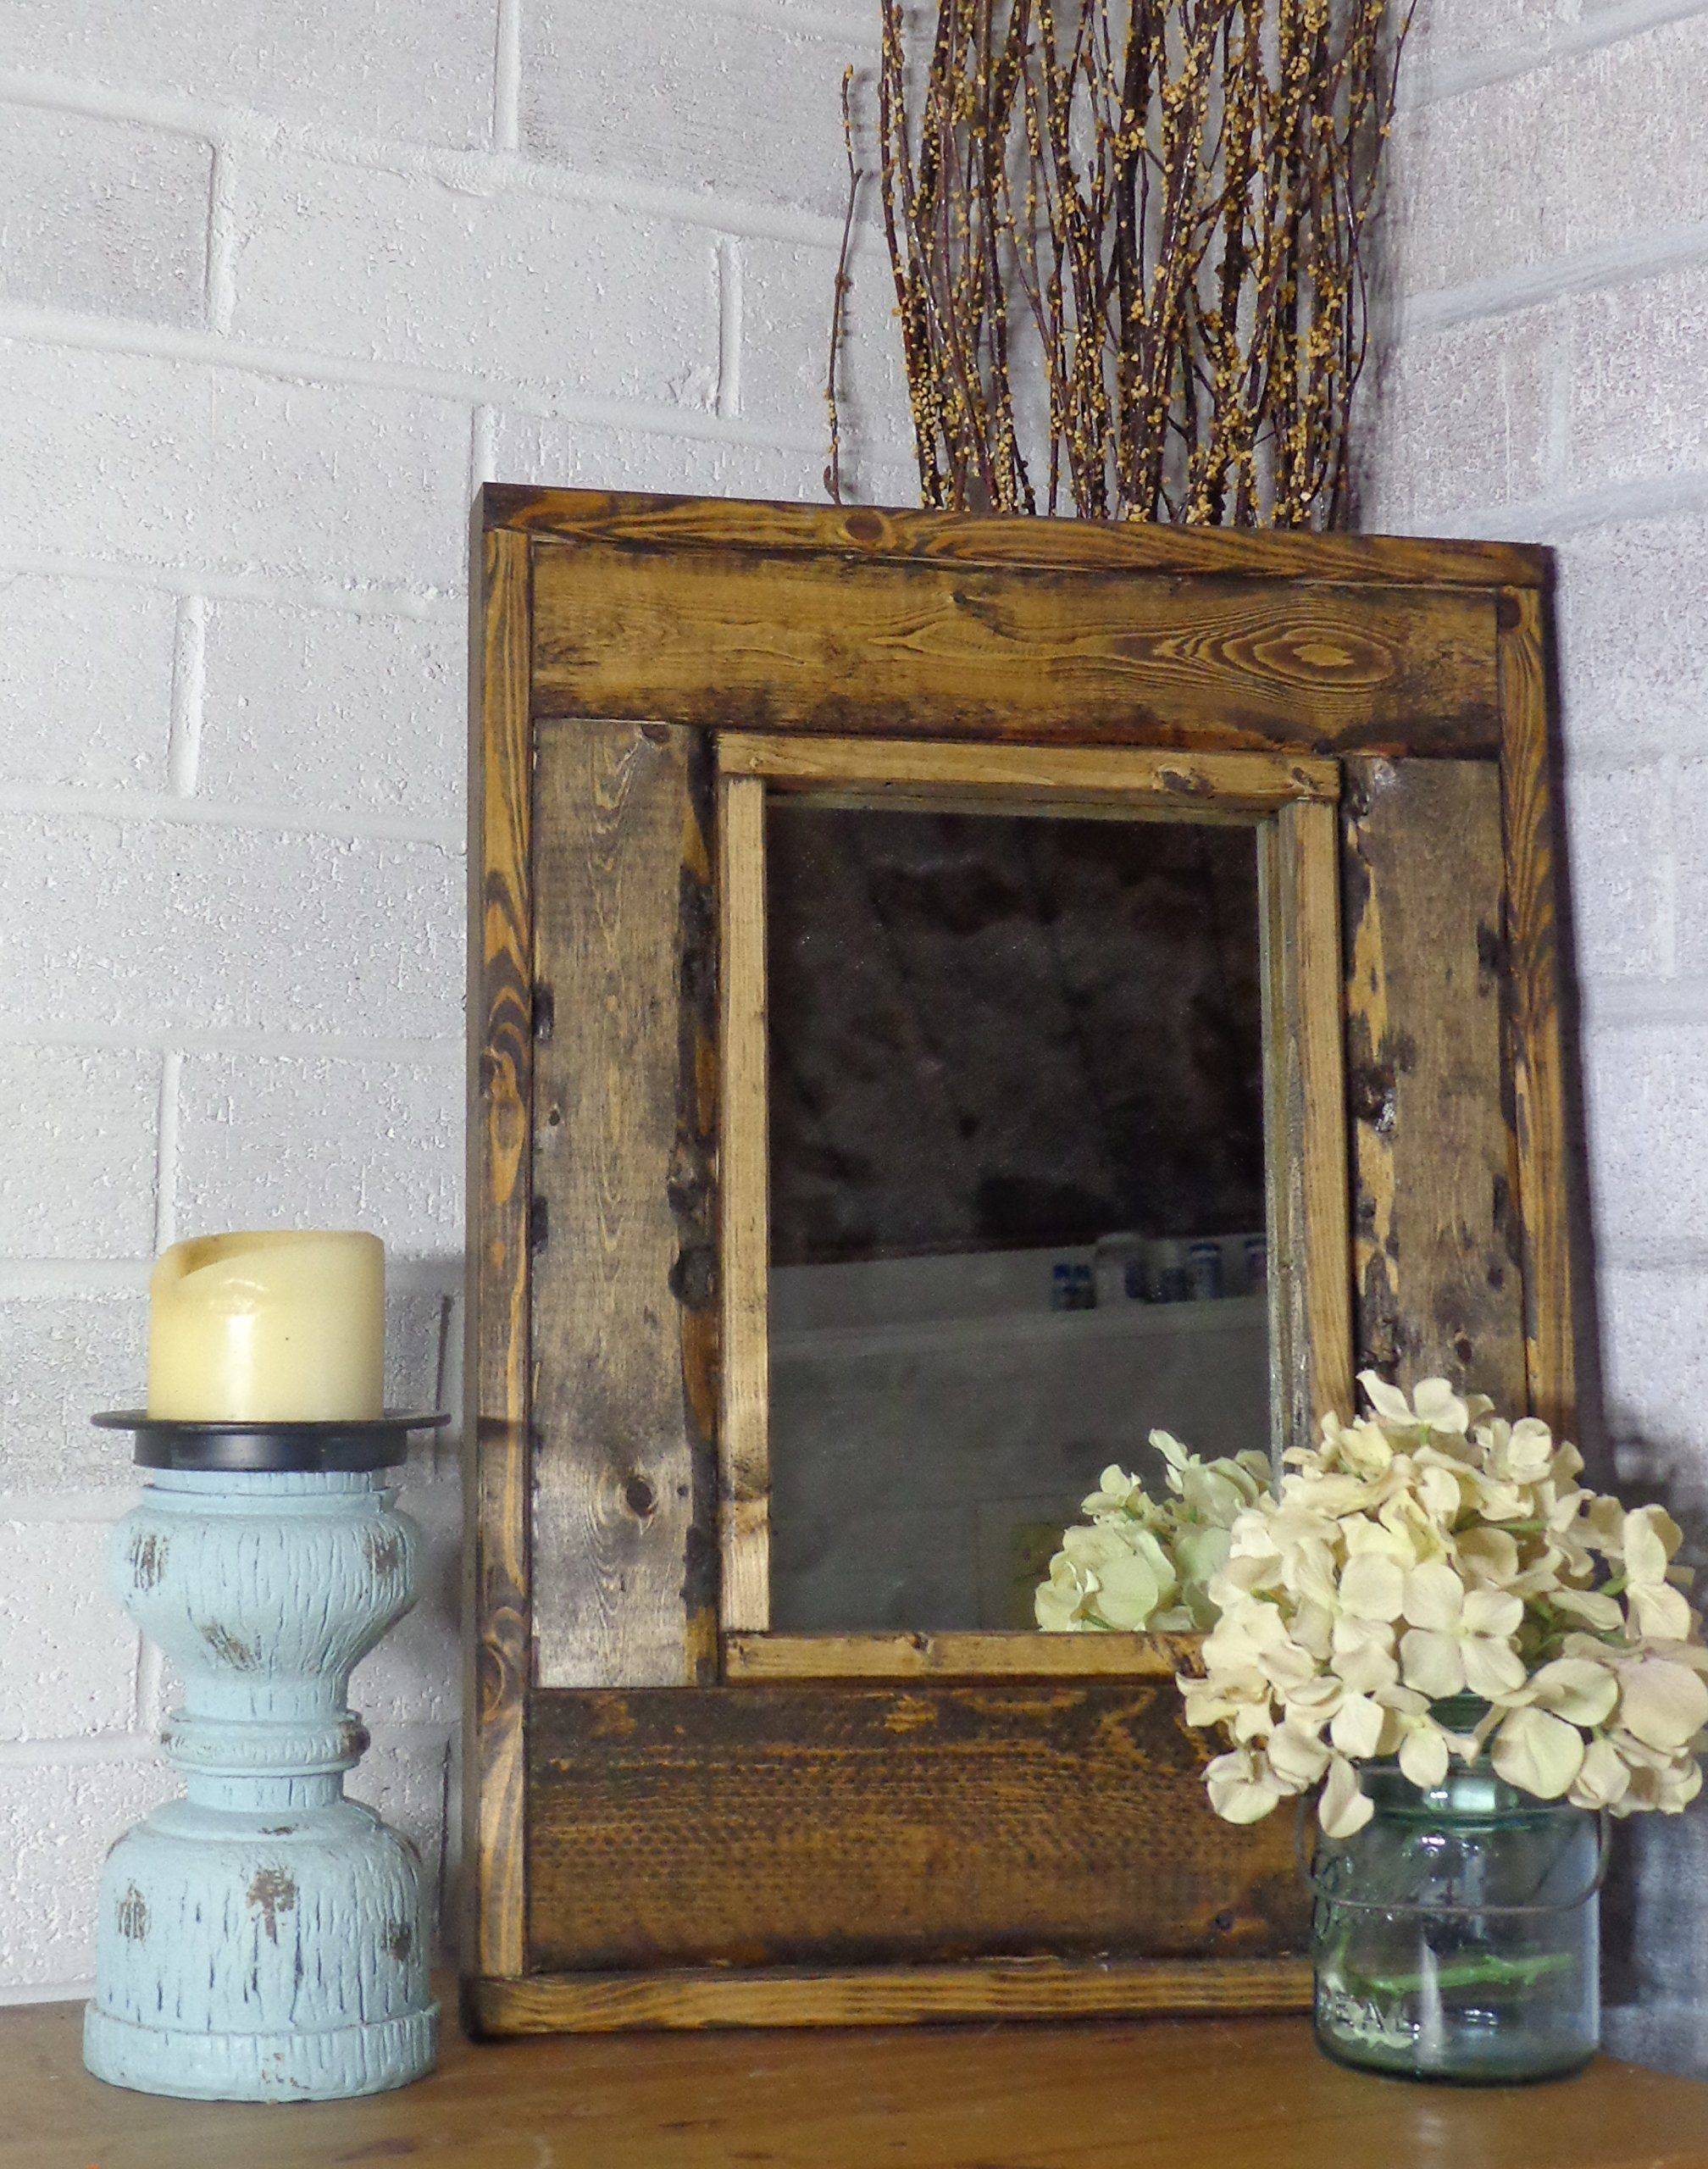 Renewed décor small herringbone reclaimed wood mirror in 20 stain colors large wall mirror rustic modern home home decor mirror housewares